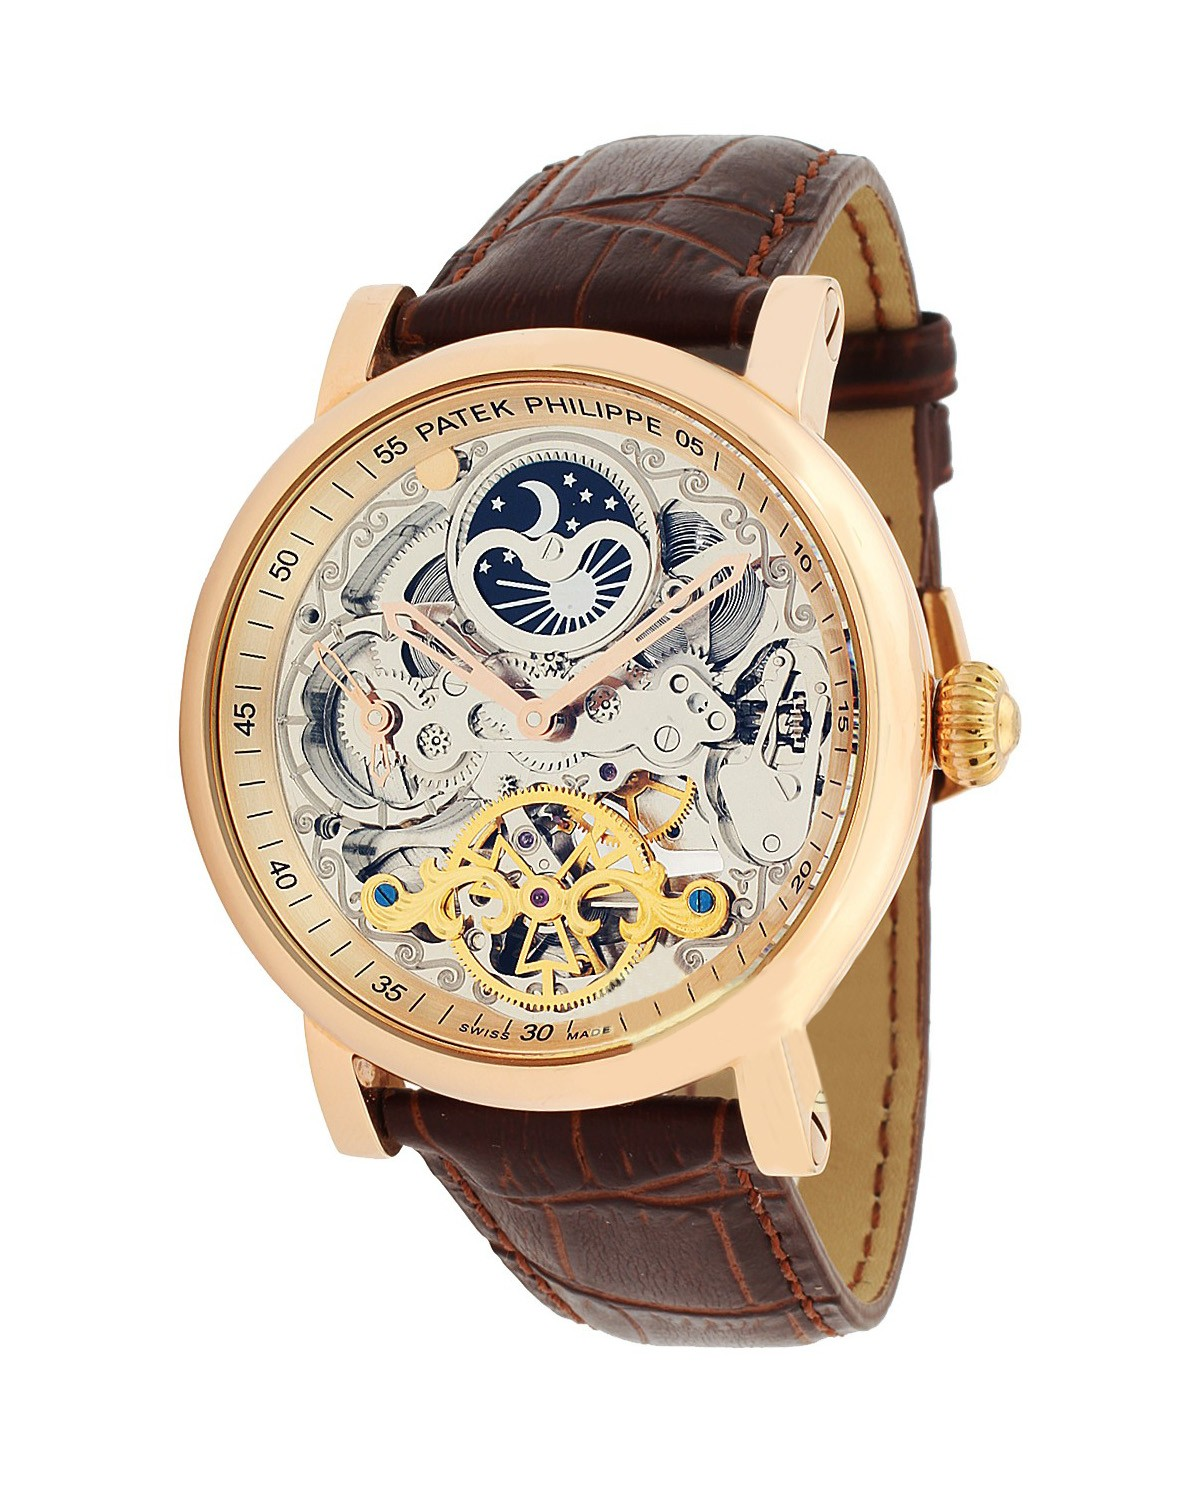 Patek philippe skeleton automatic brown leather strap mens watch for Patek phillipe watch